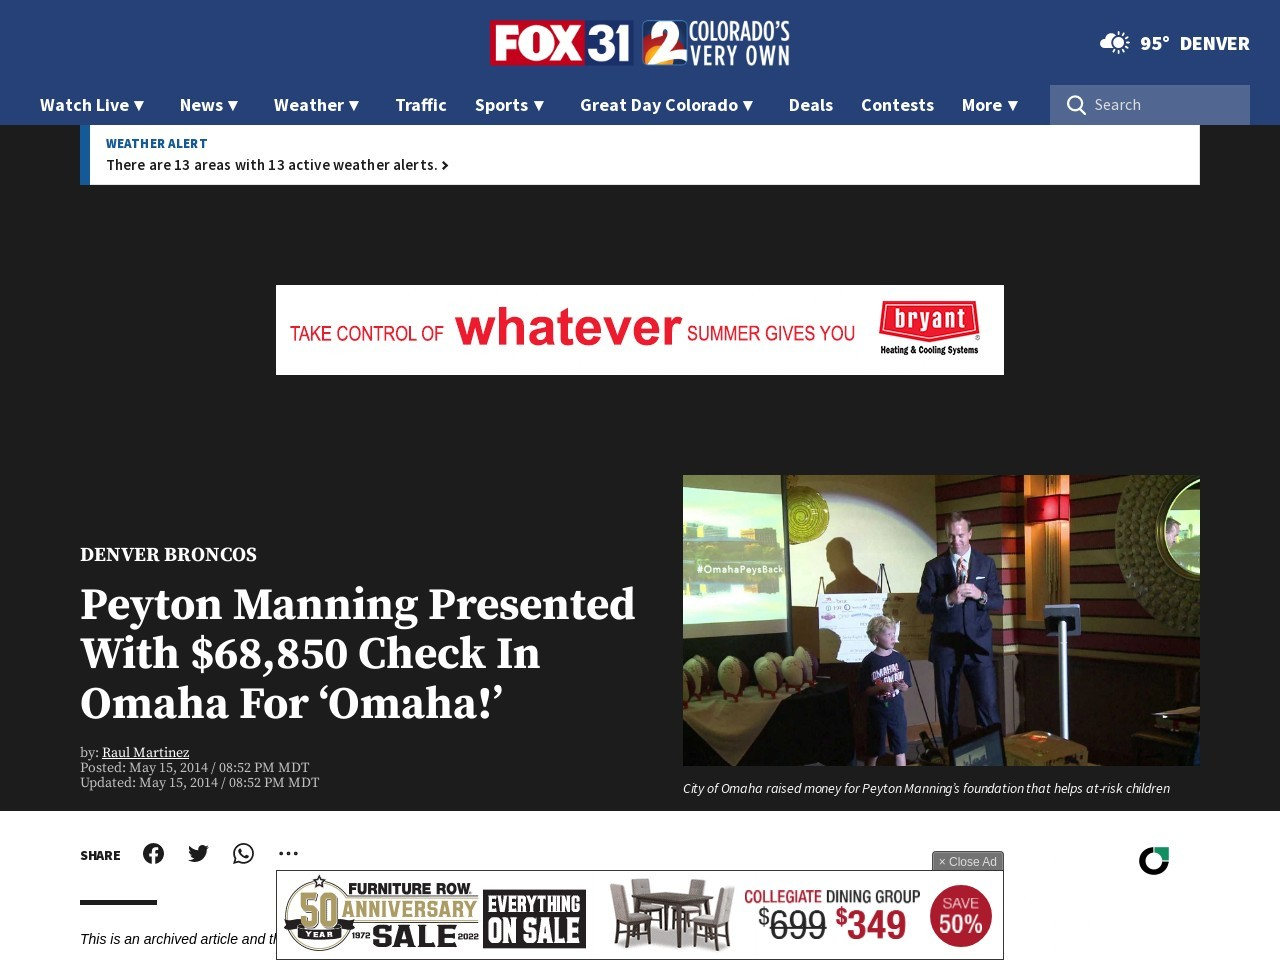 Peyton Manning Presented With $68850 Check In Omaha For 'Omaha!'